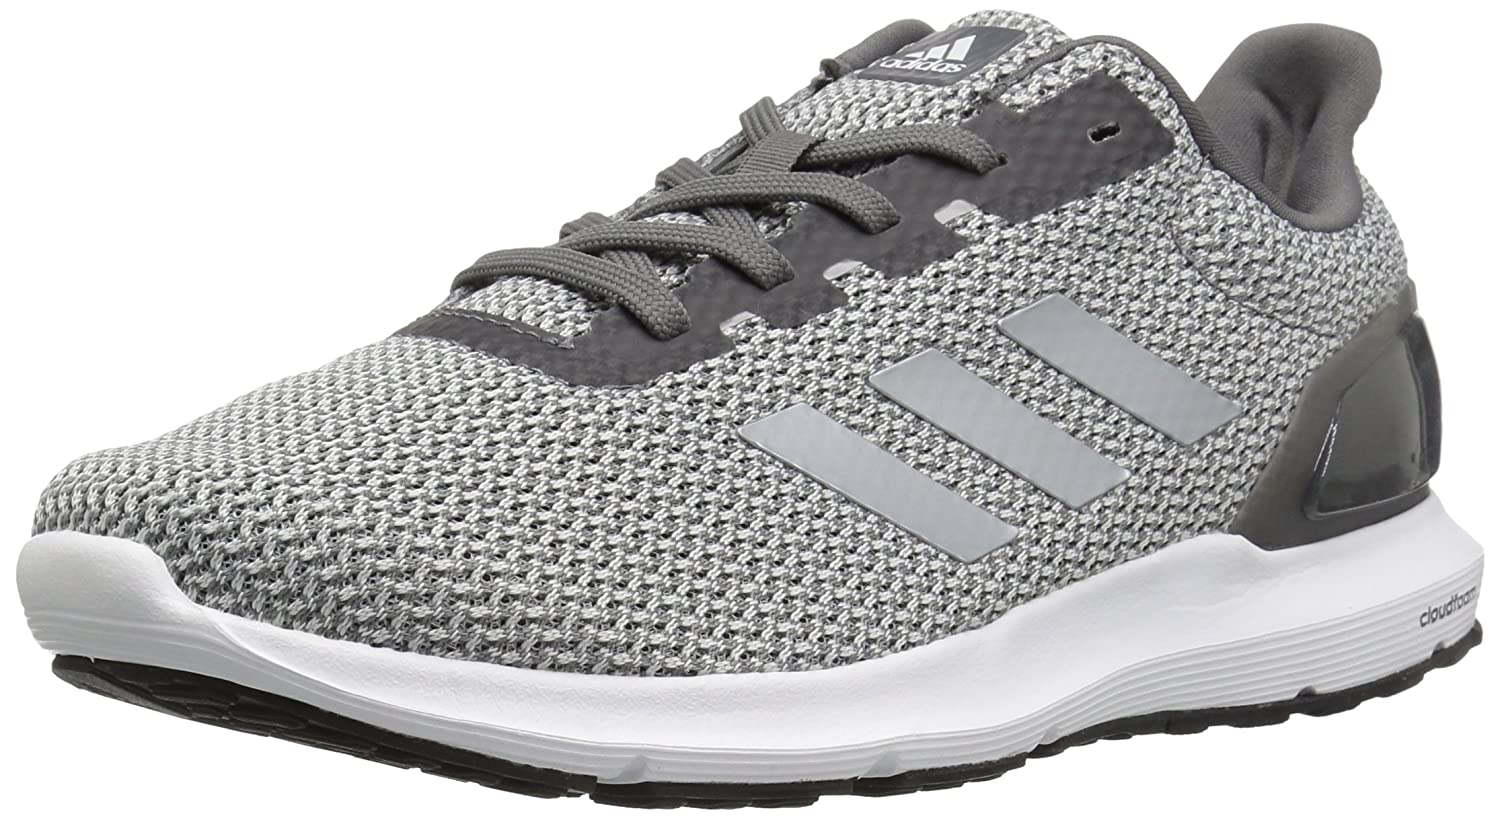 adidas Women's Cosmic 2 Sl W Running Shoe B01MU1PF92 11 B(M) US|Metallic Silver/Grey Four/White